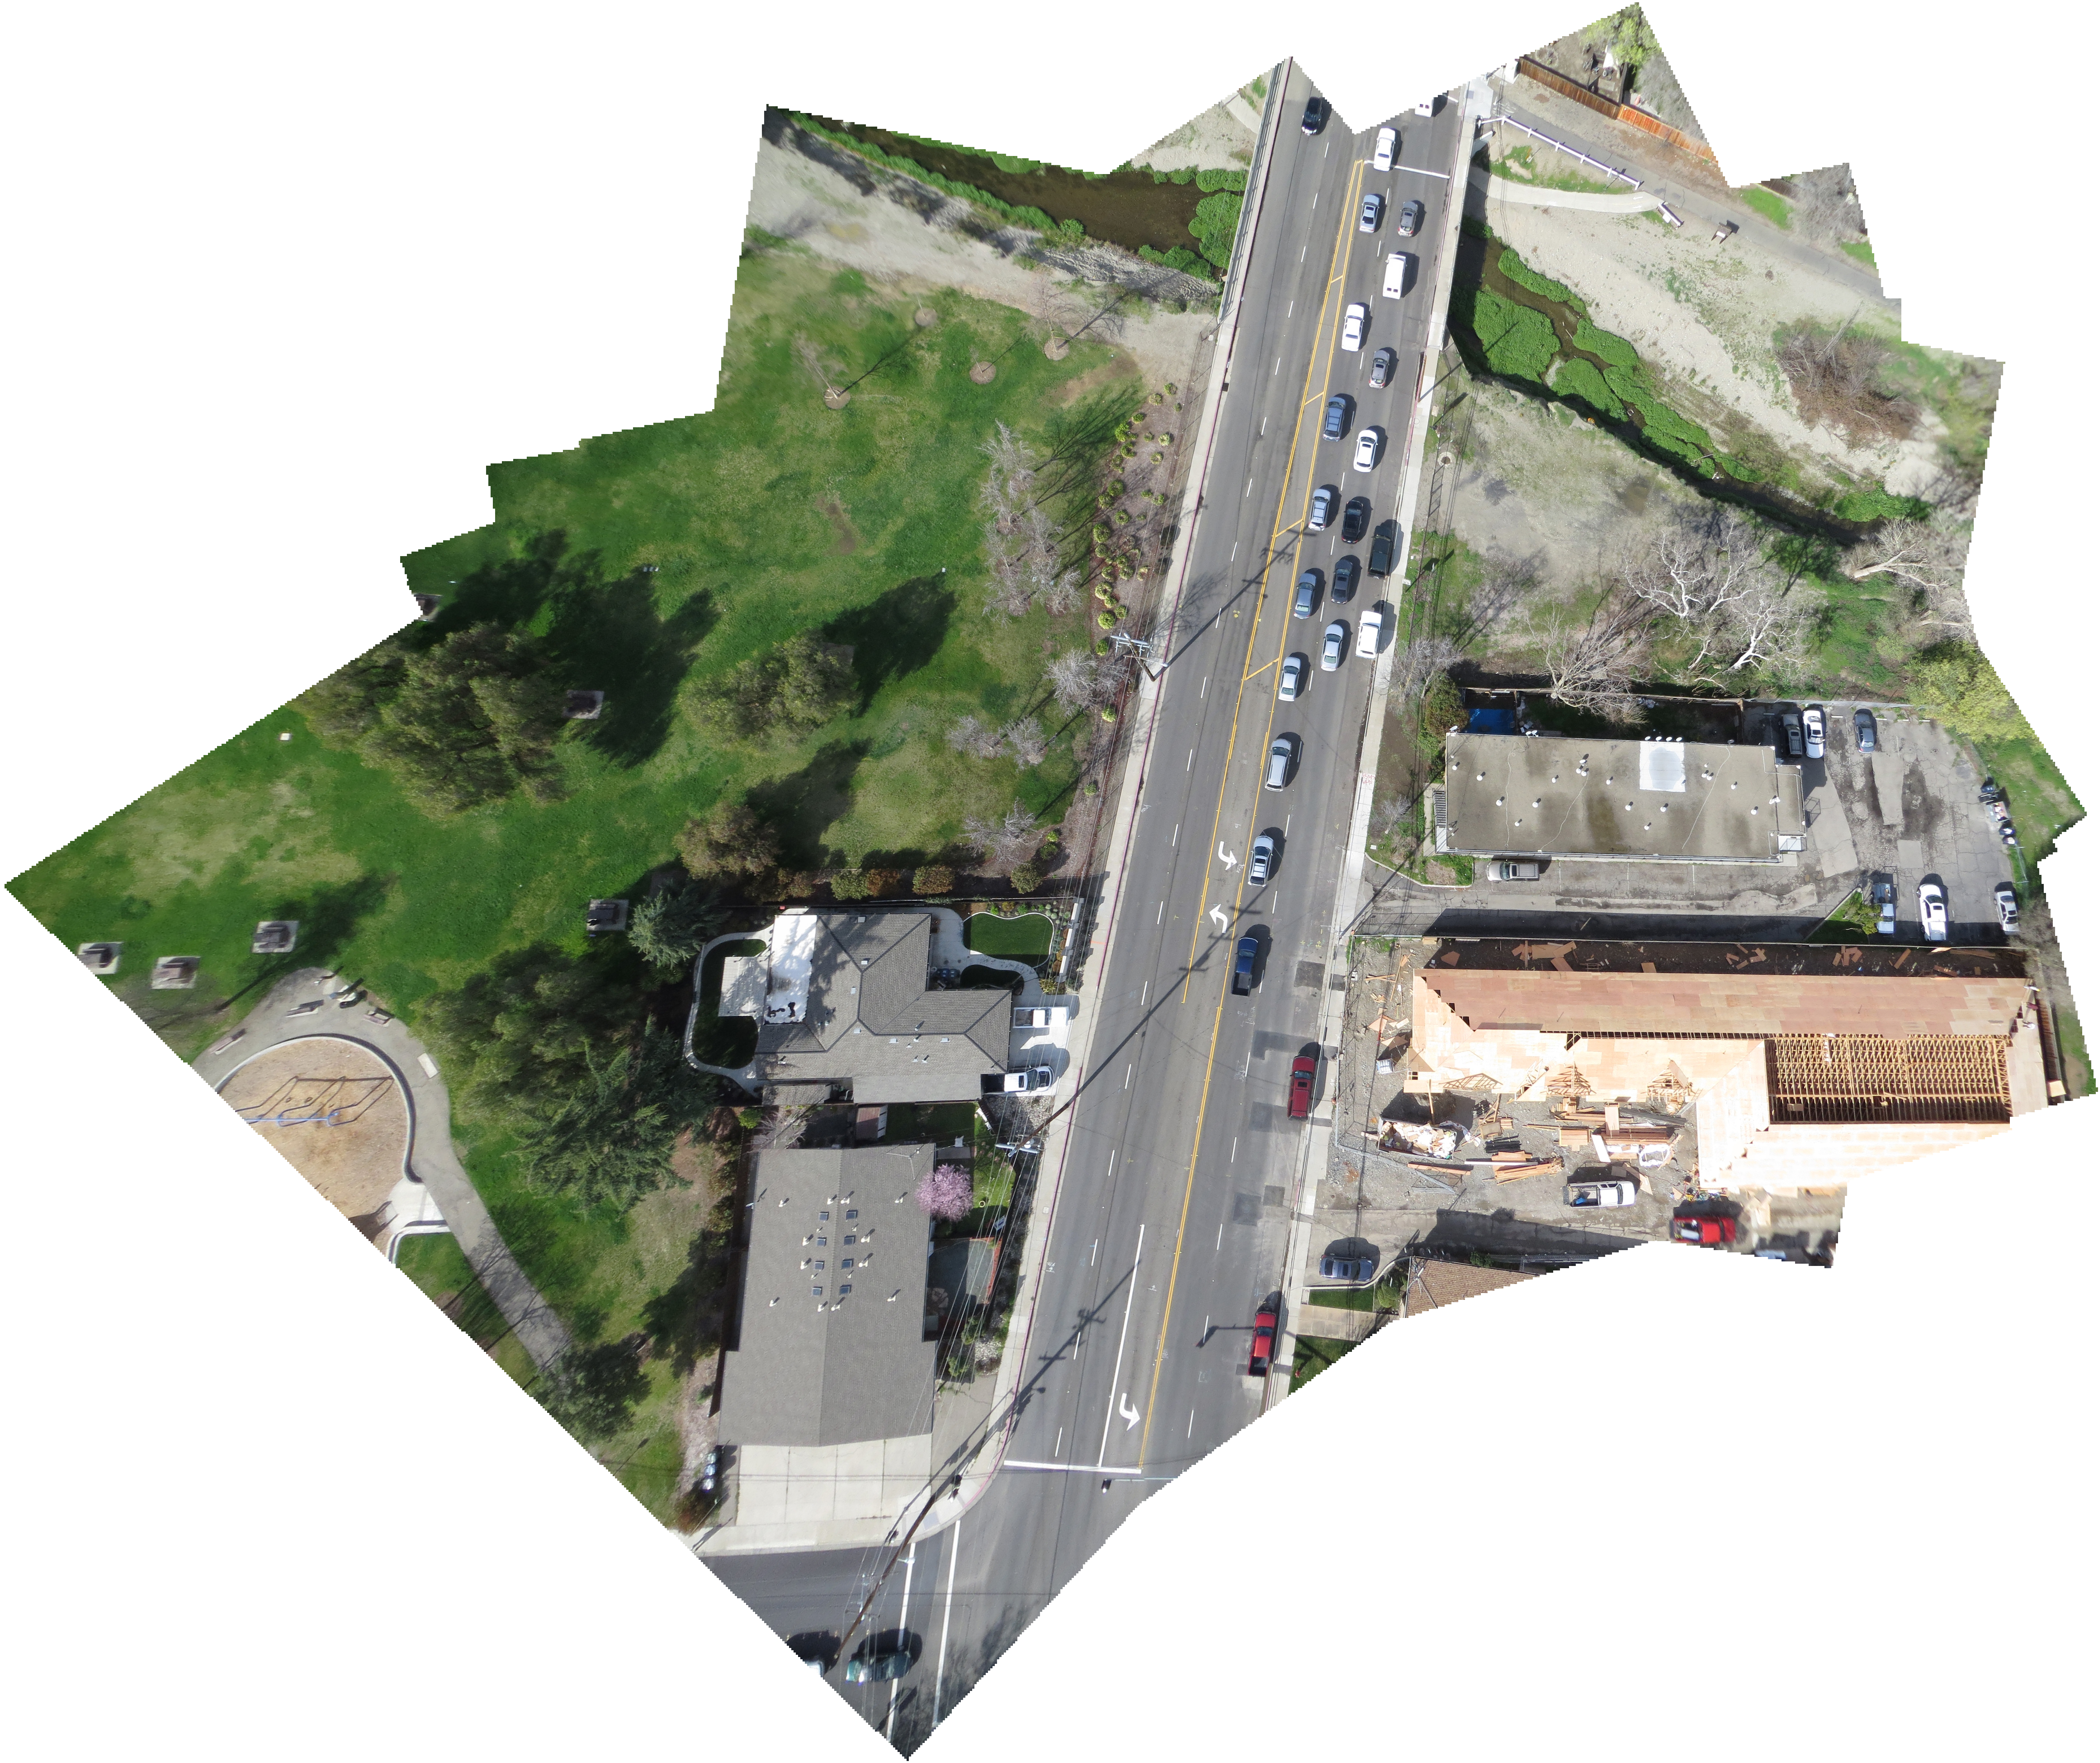 Construction Site Map: Public Lab: More Updated Maps